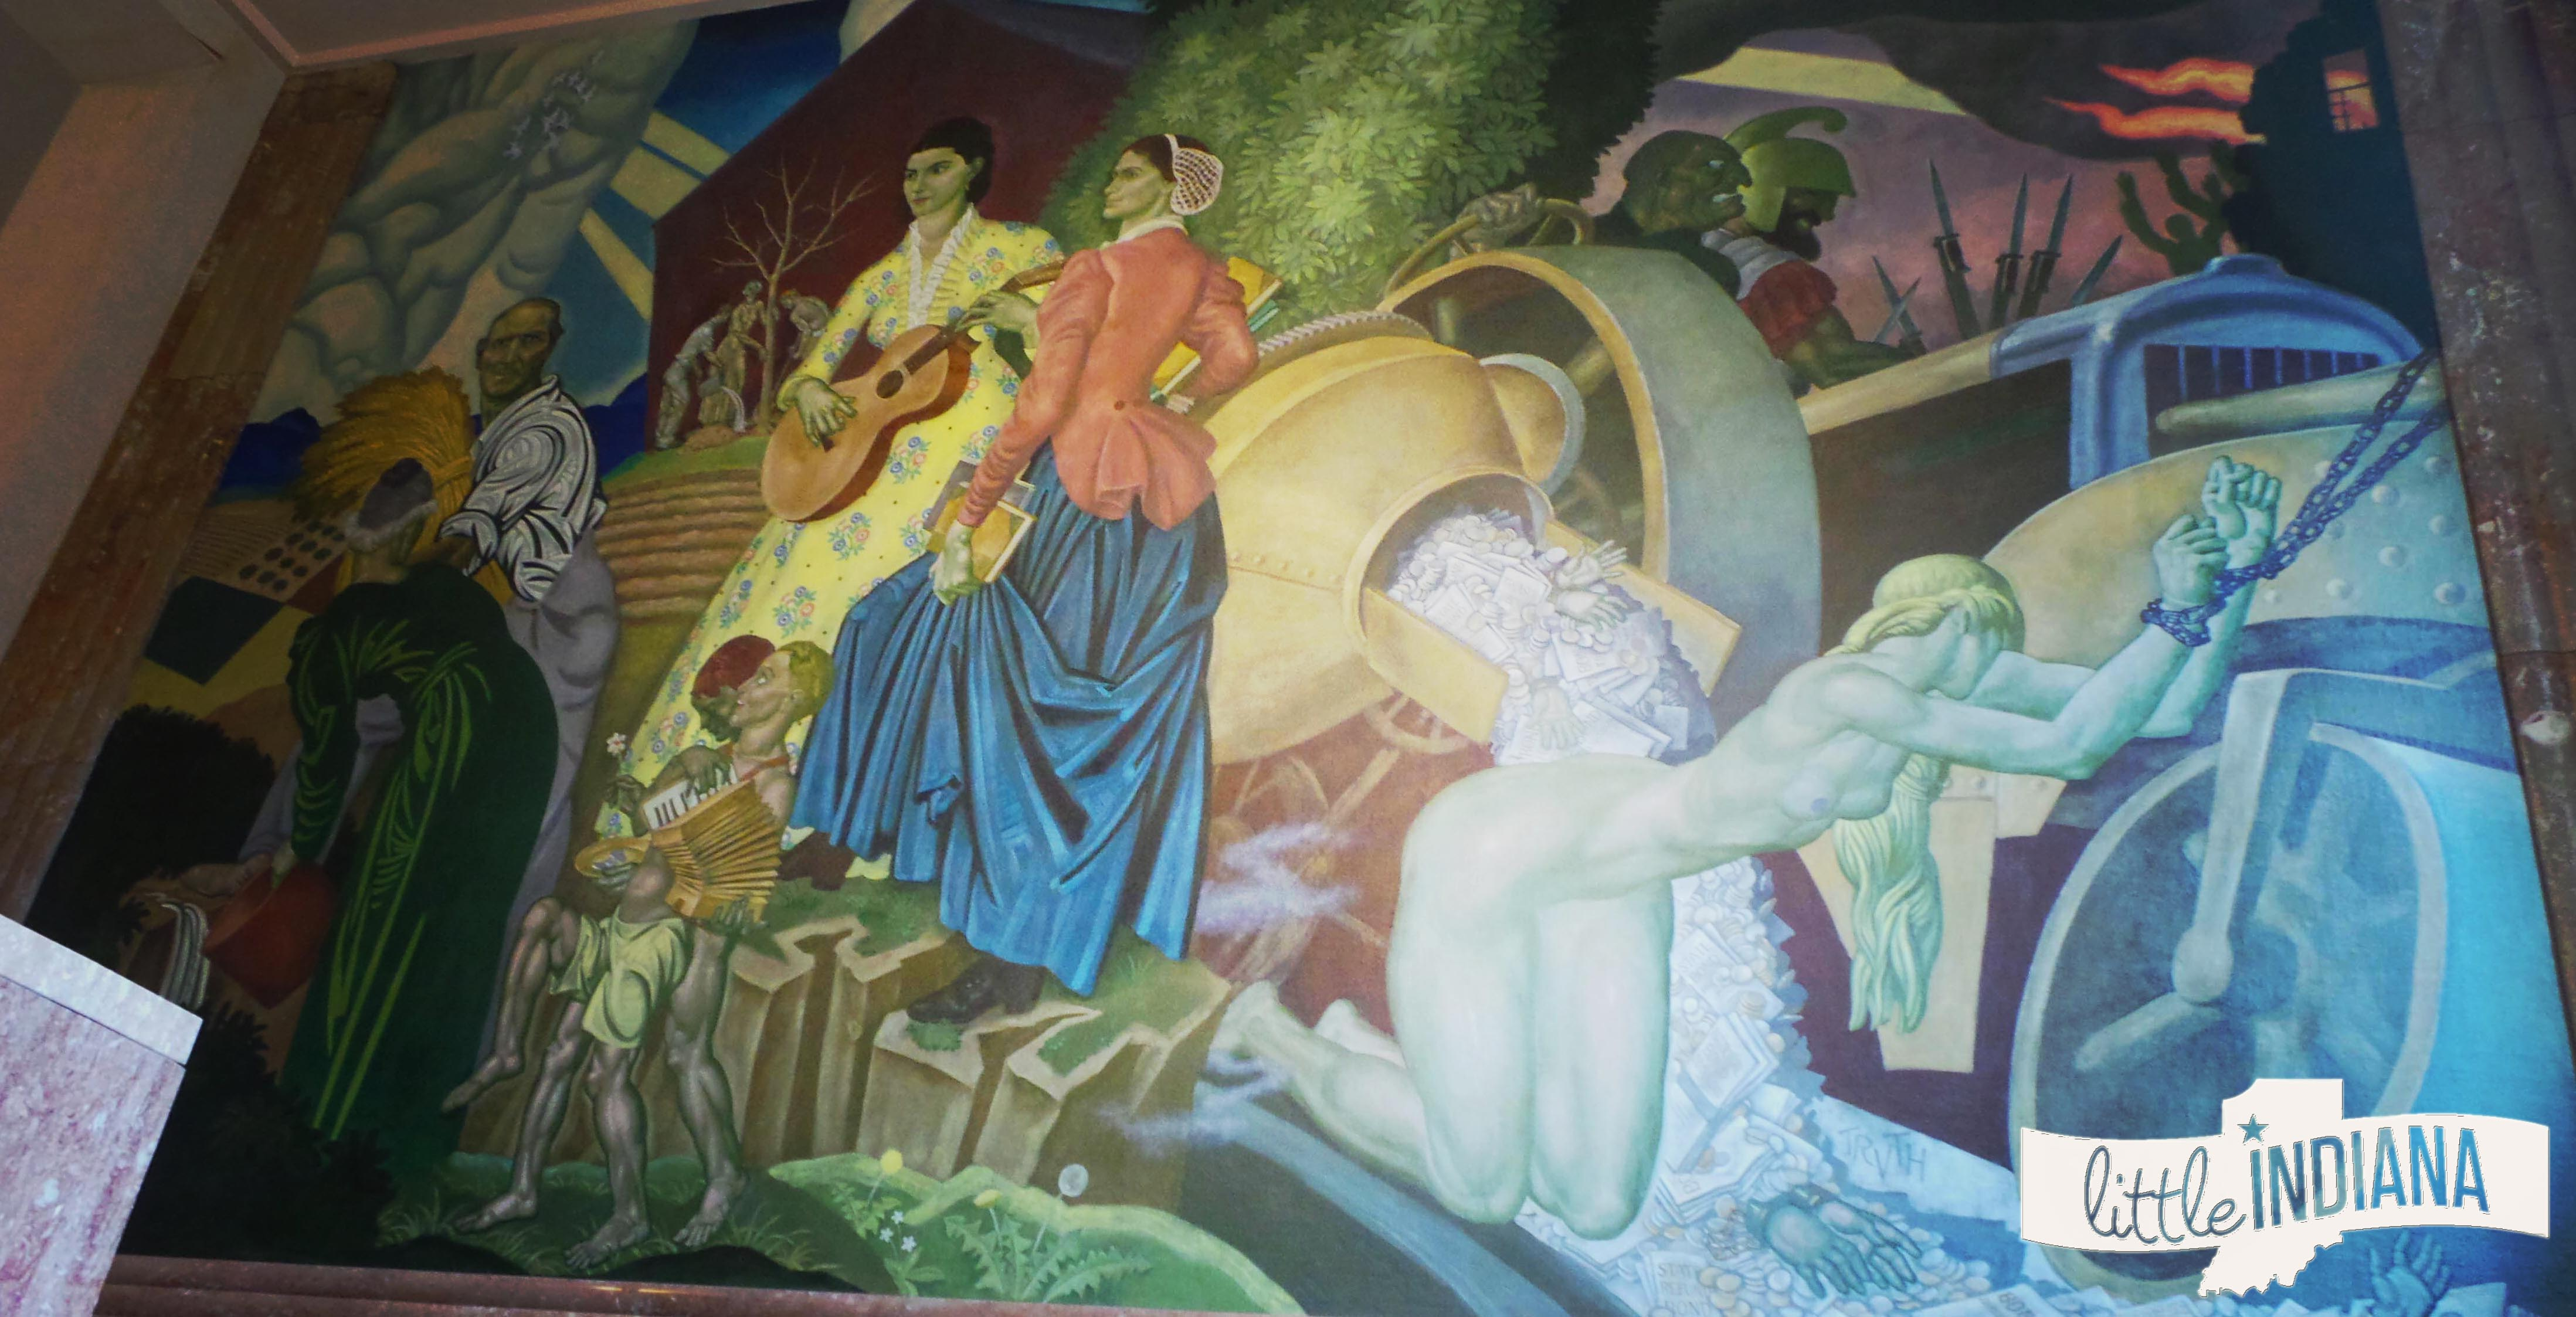 Indiana marshall county tippecanoe - Murals Eugene Savage Mural At Fountain County Courthouse Indiana